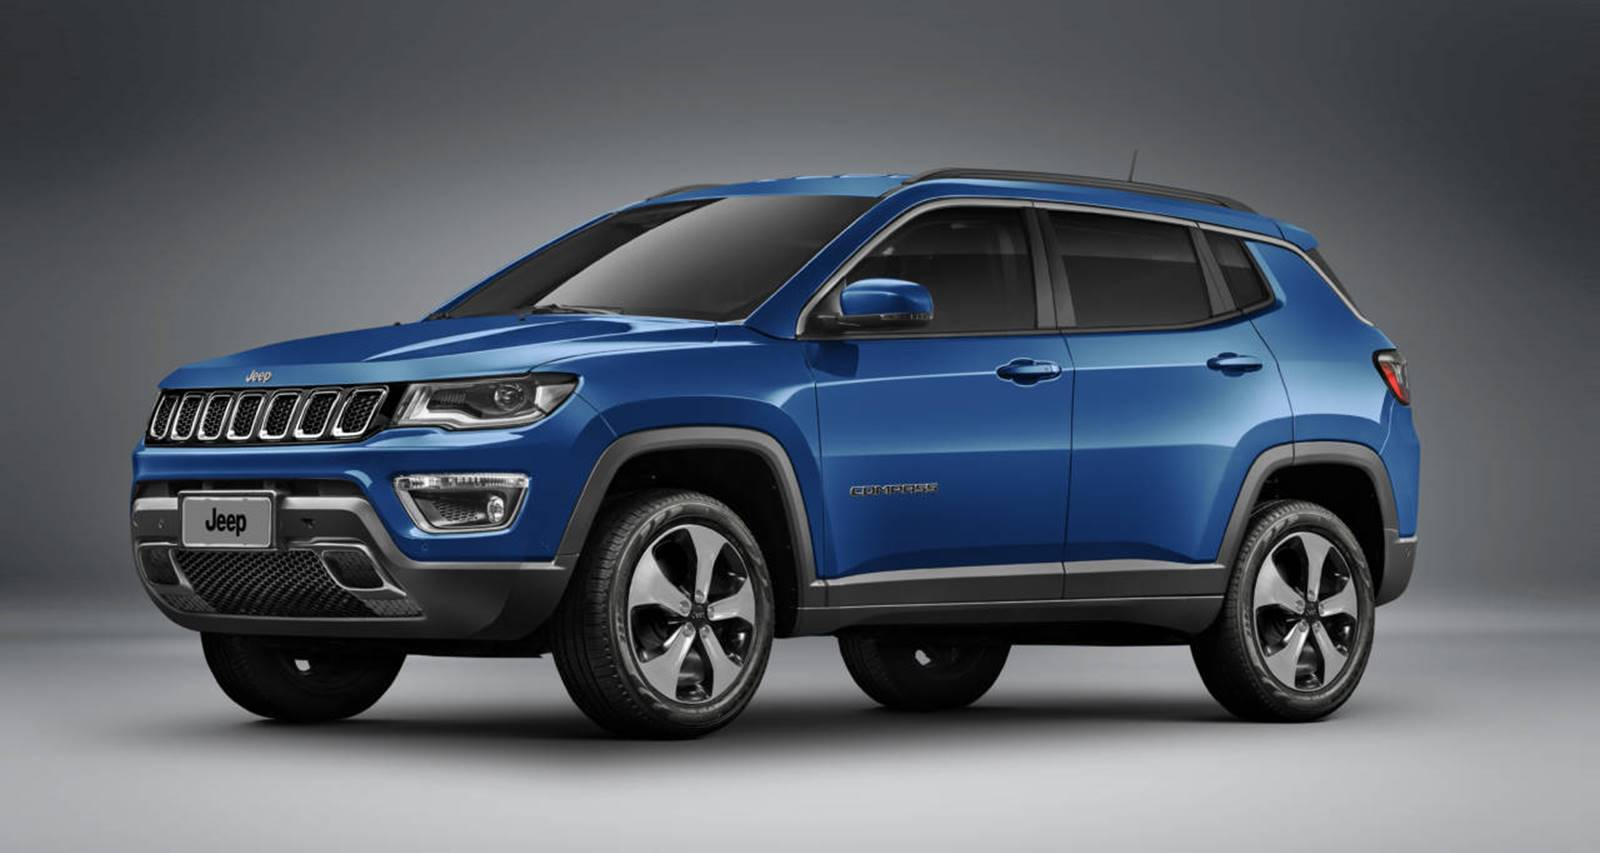 jeep compass 2017 primeiras fotos e informa es oficiais car blog br. Black Bedroom Furniture Sets. Home Design Ideas